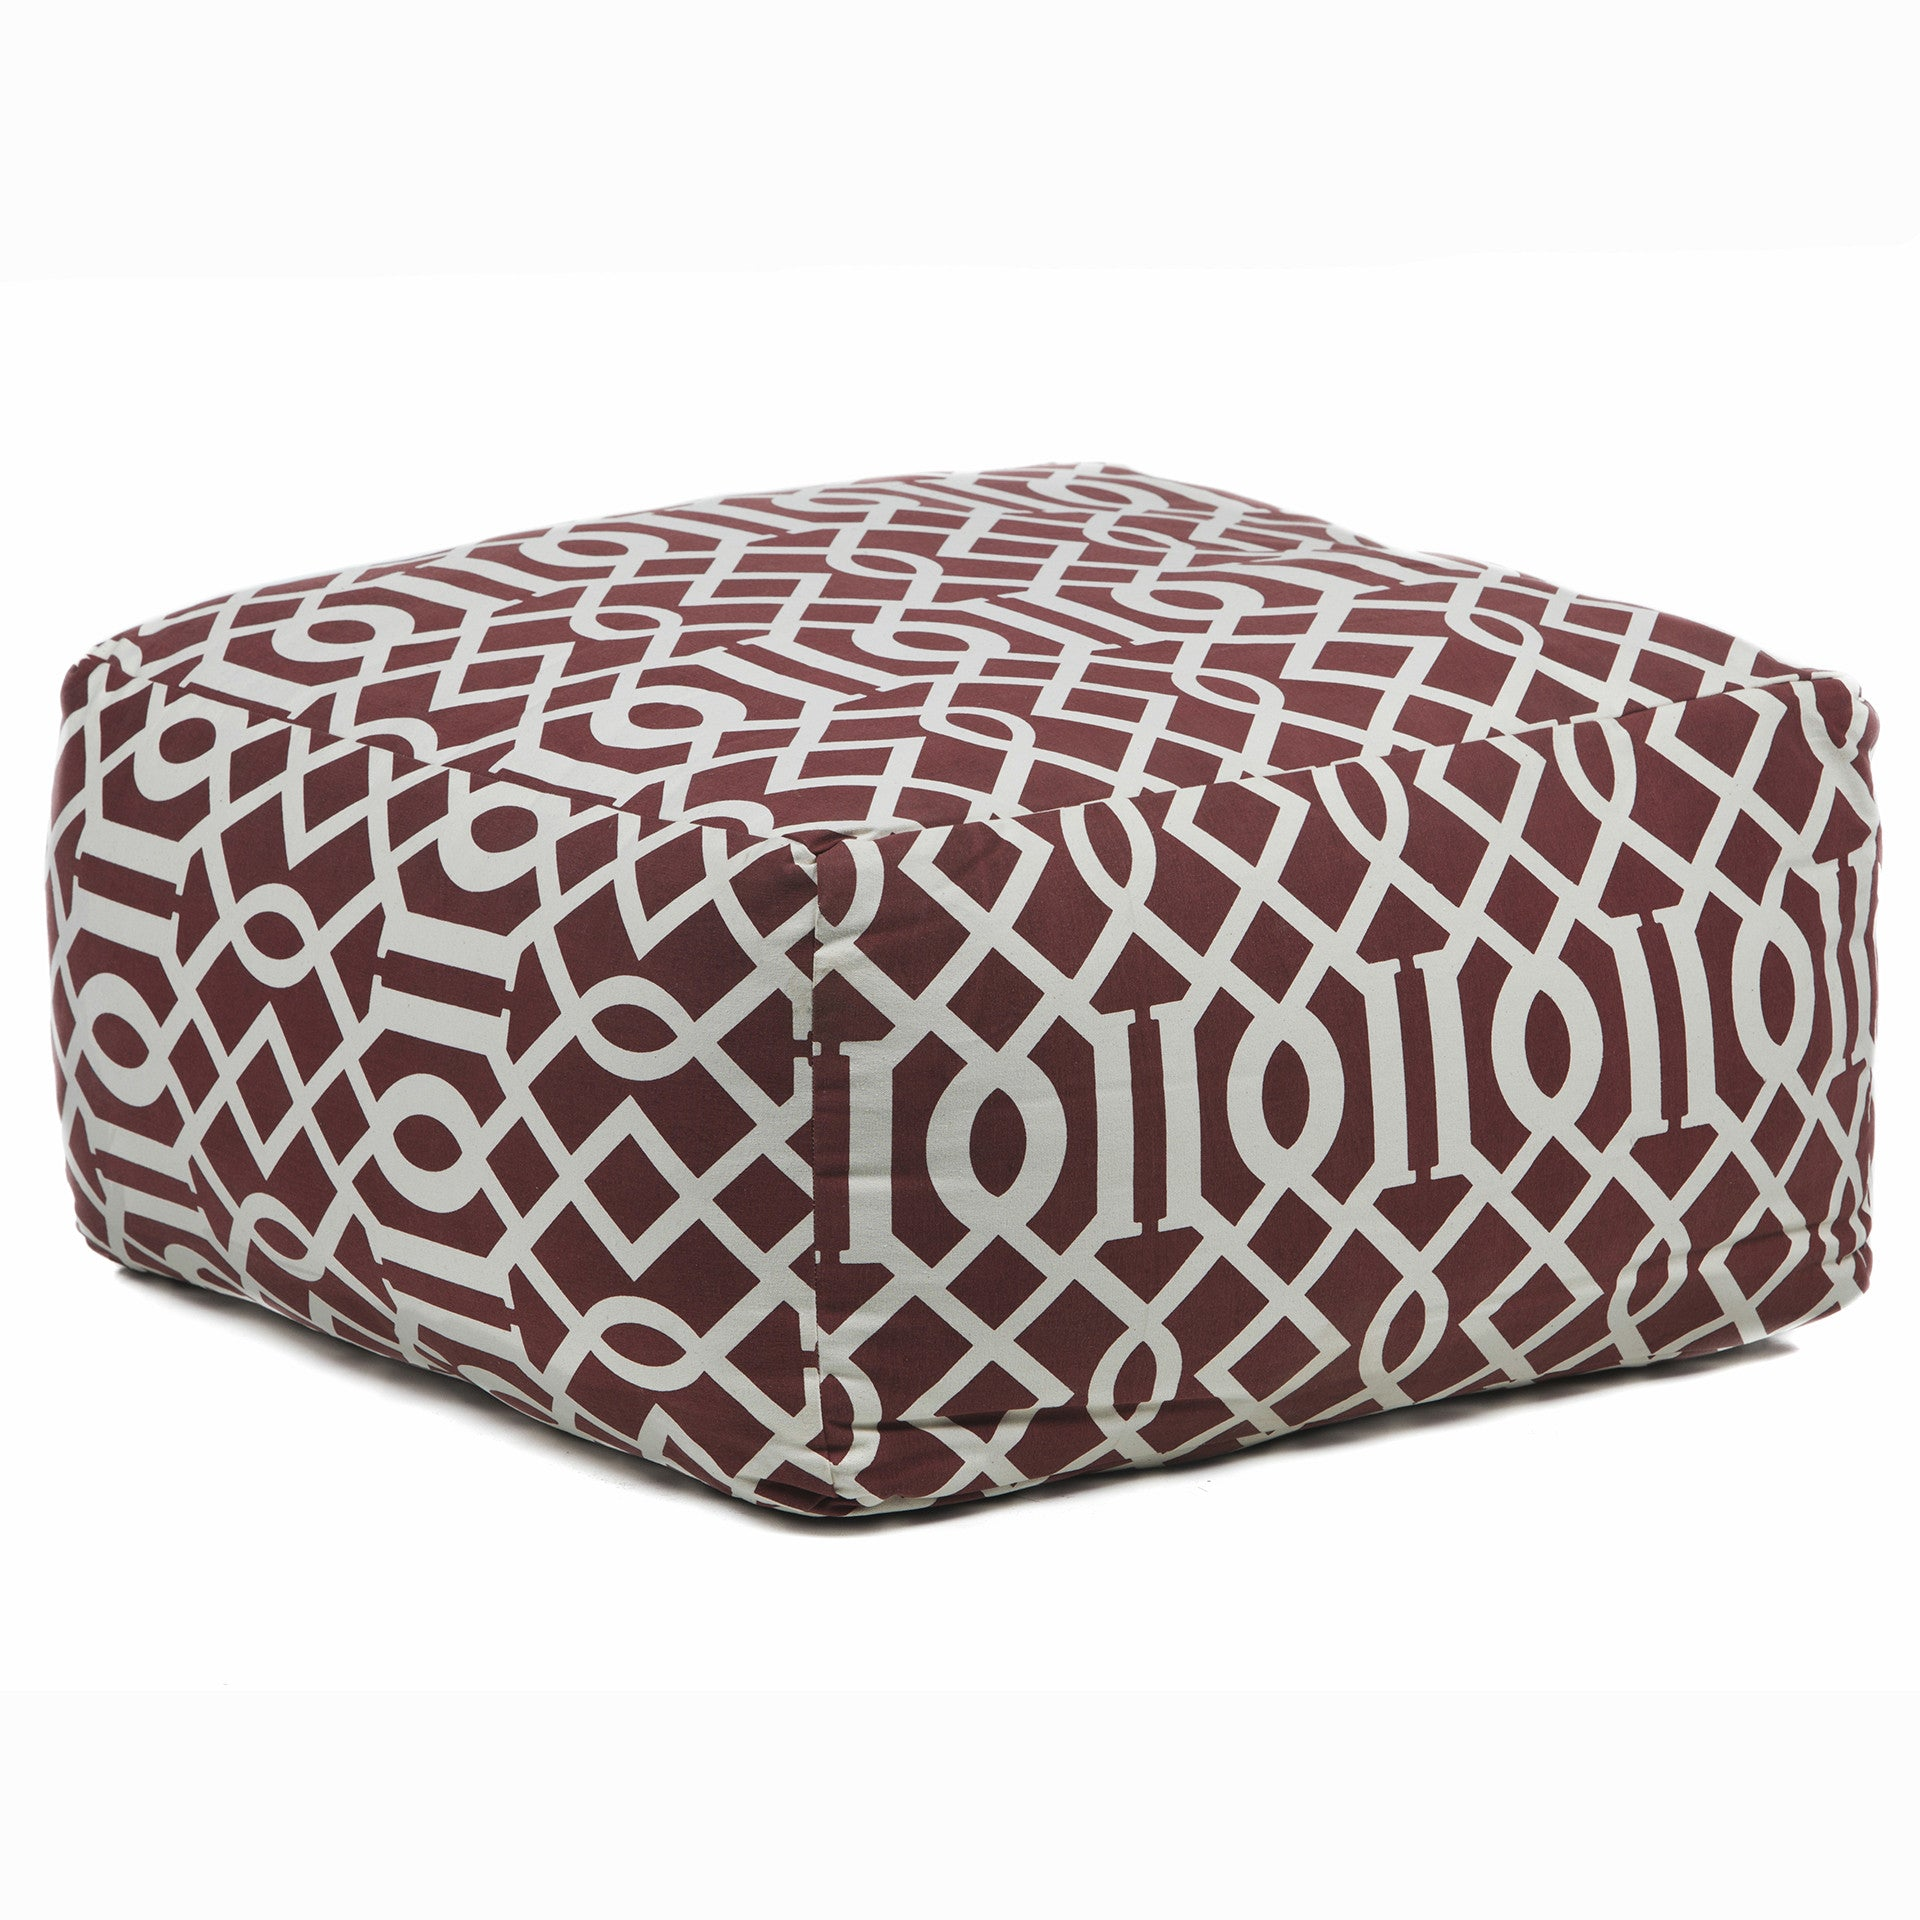 Pouf in Maroon & Cream design by Chandra rugs